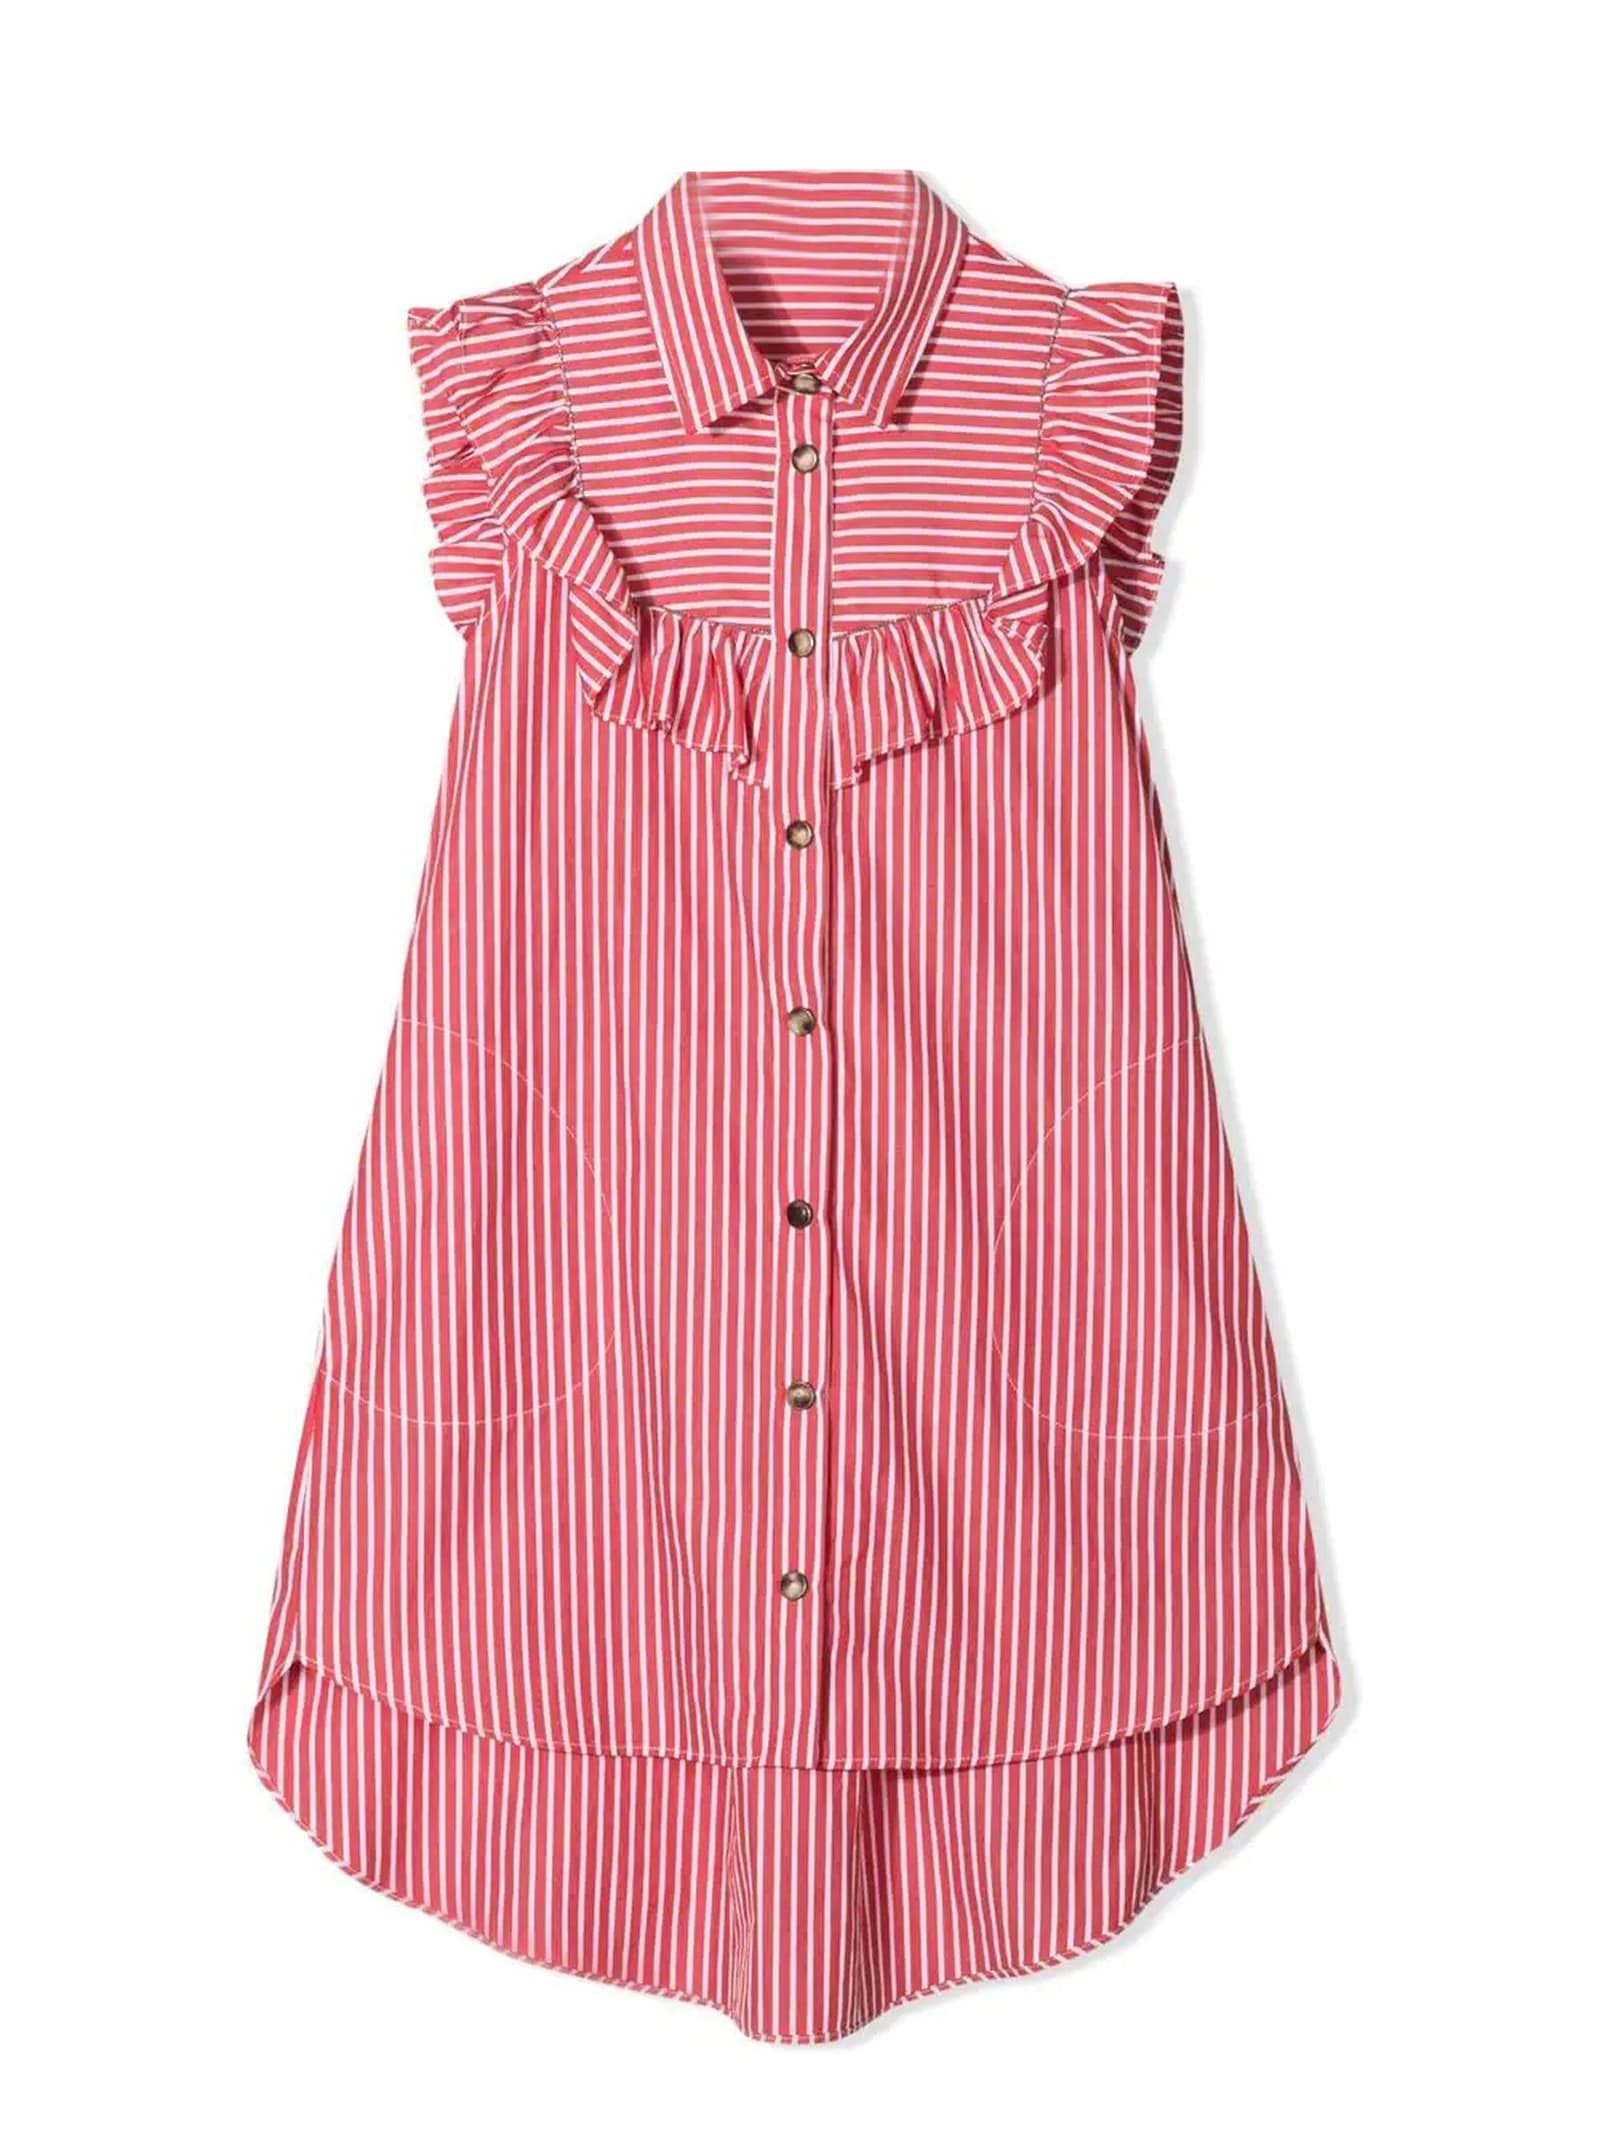 Brunello Cucinelli Red And White Cotton Shirt Dress